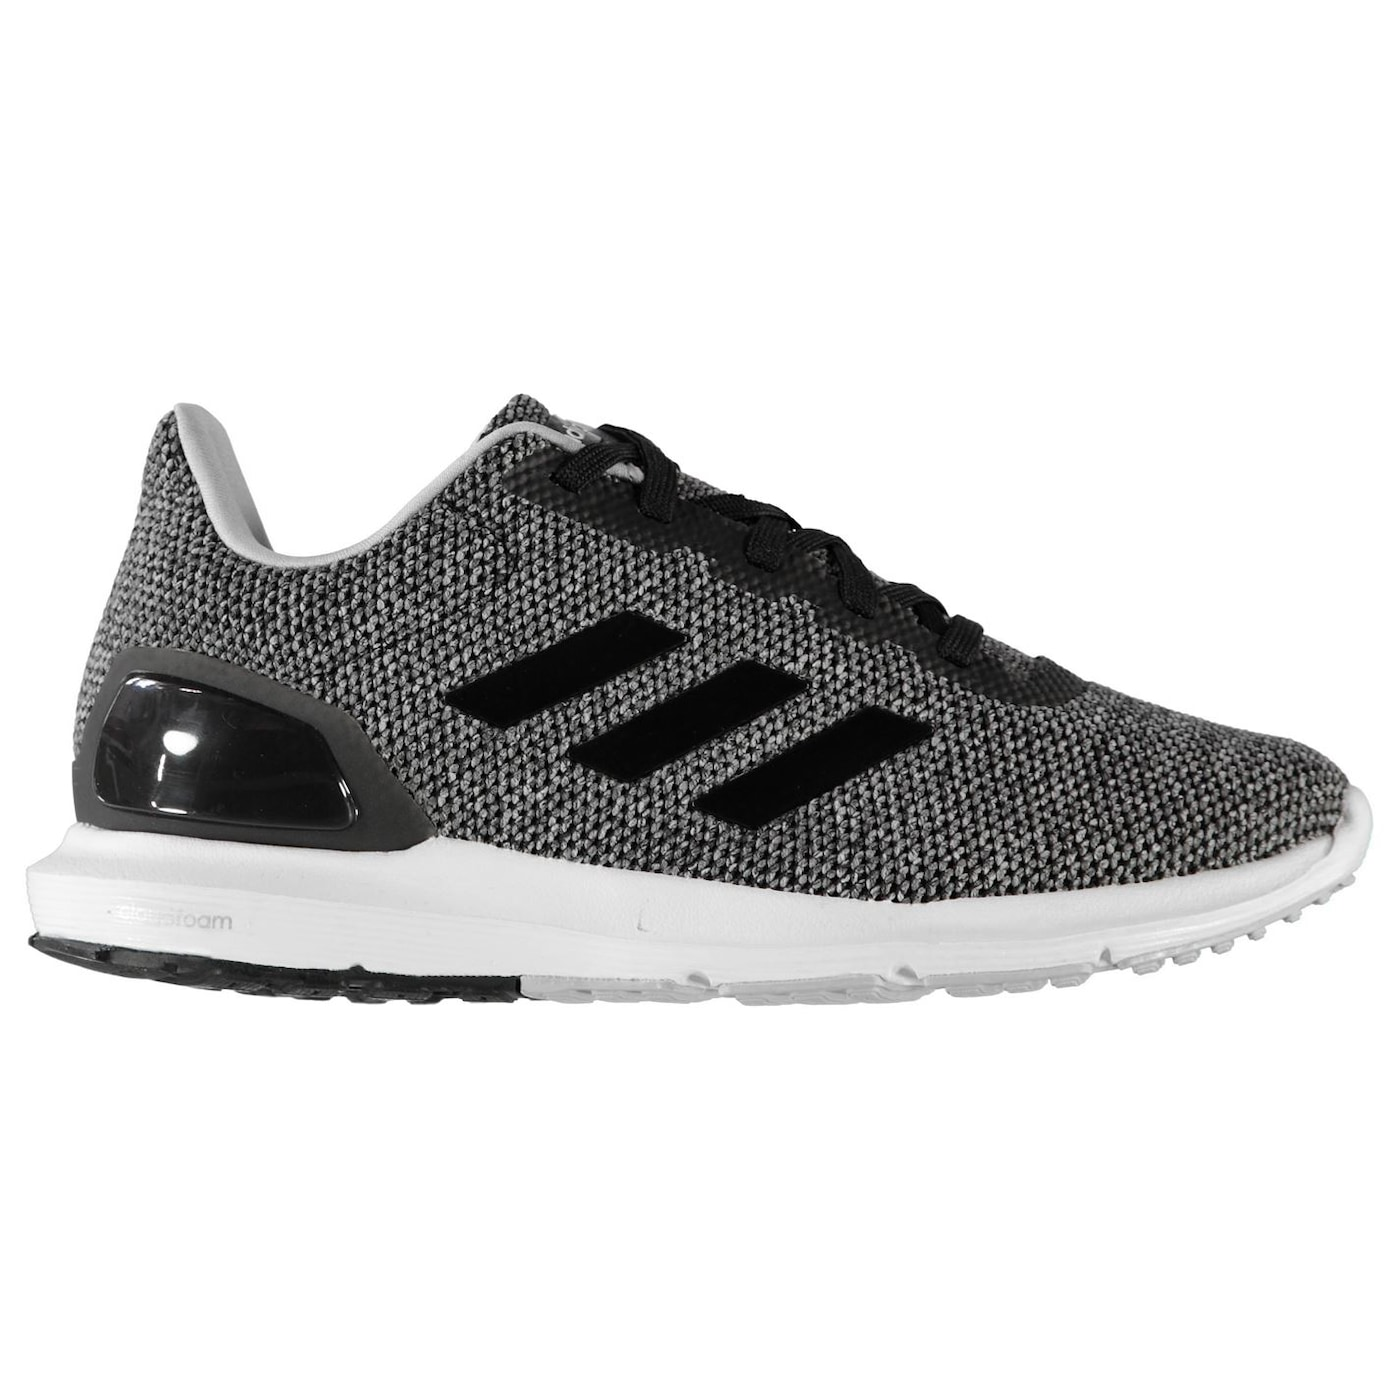 Adidas Cosmic SL Ladies Trainers